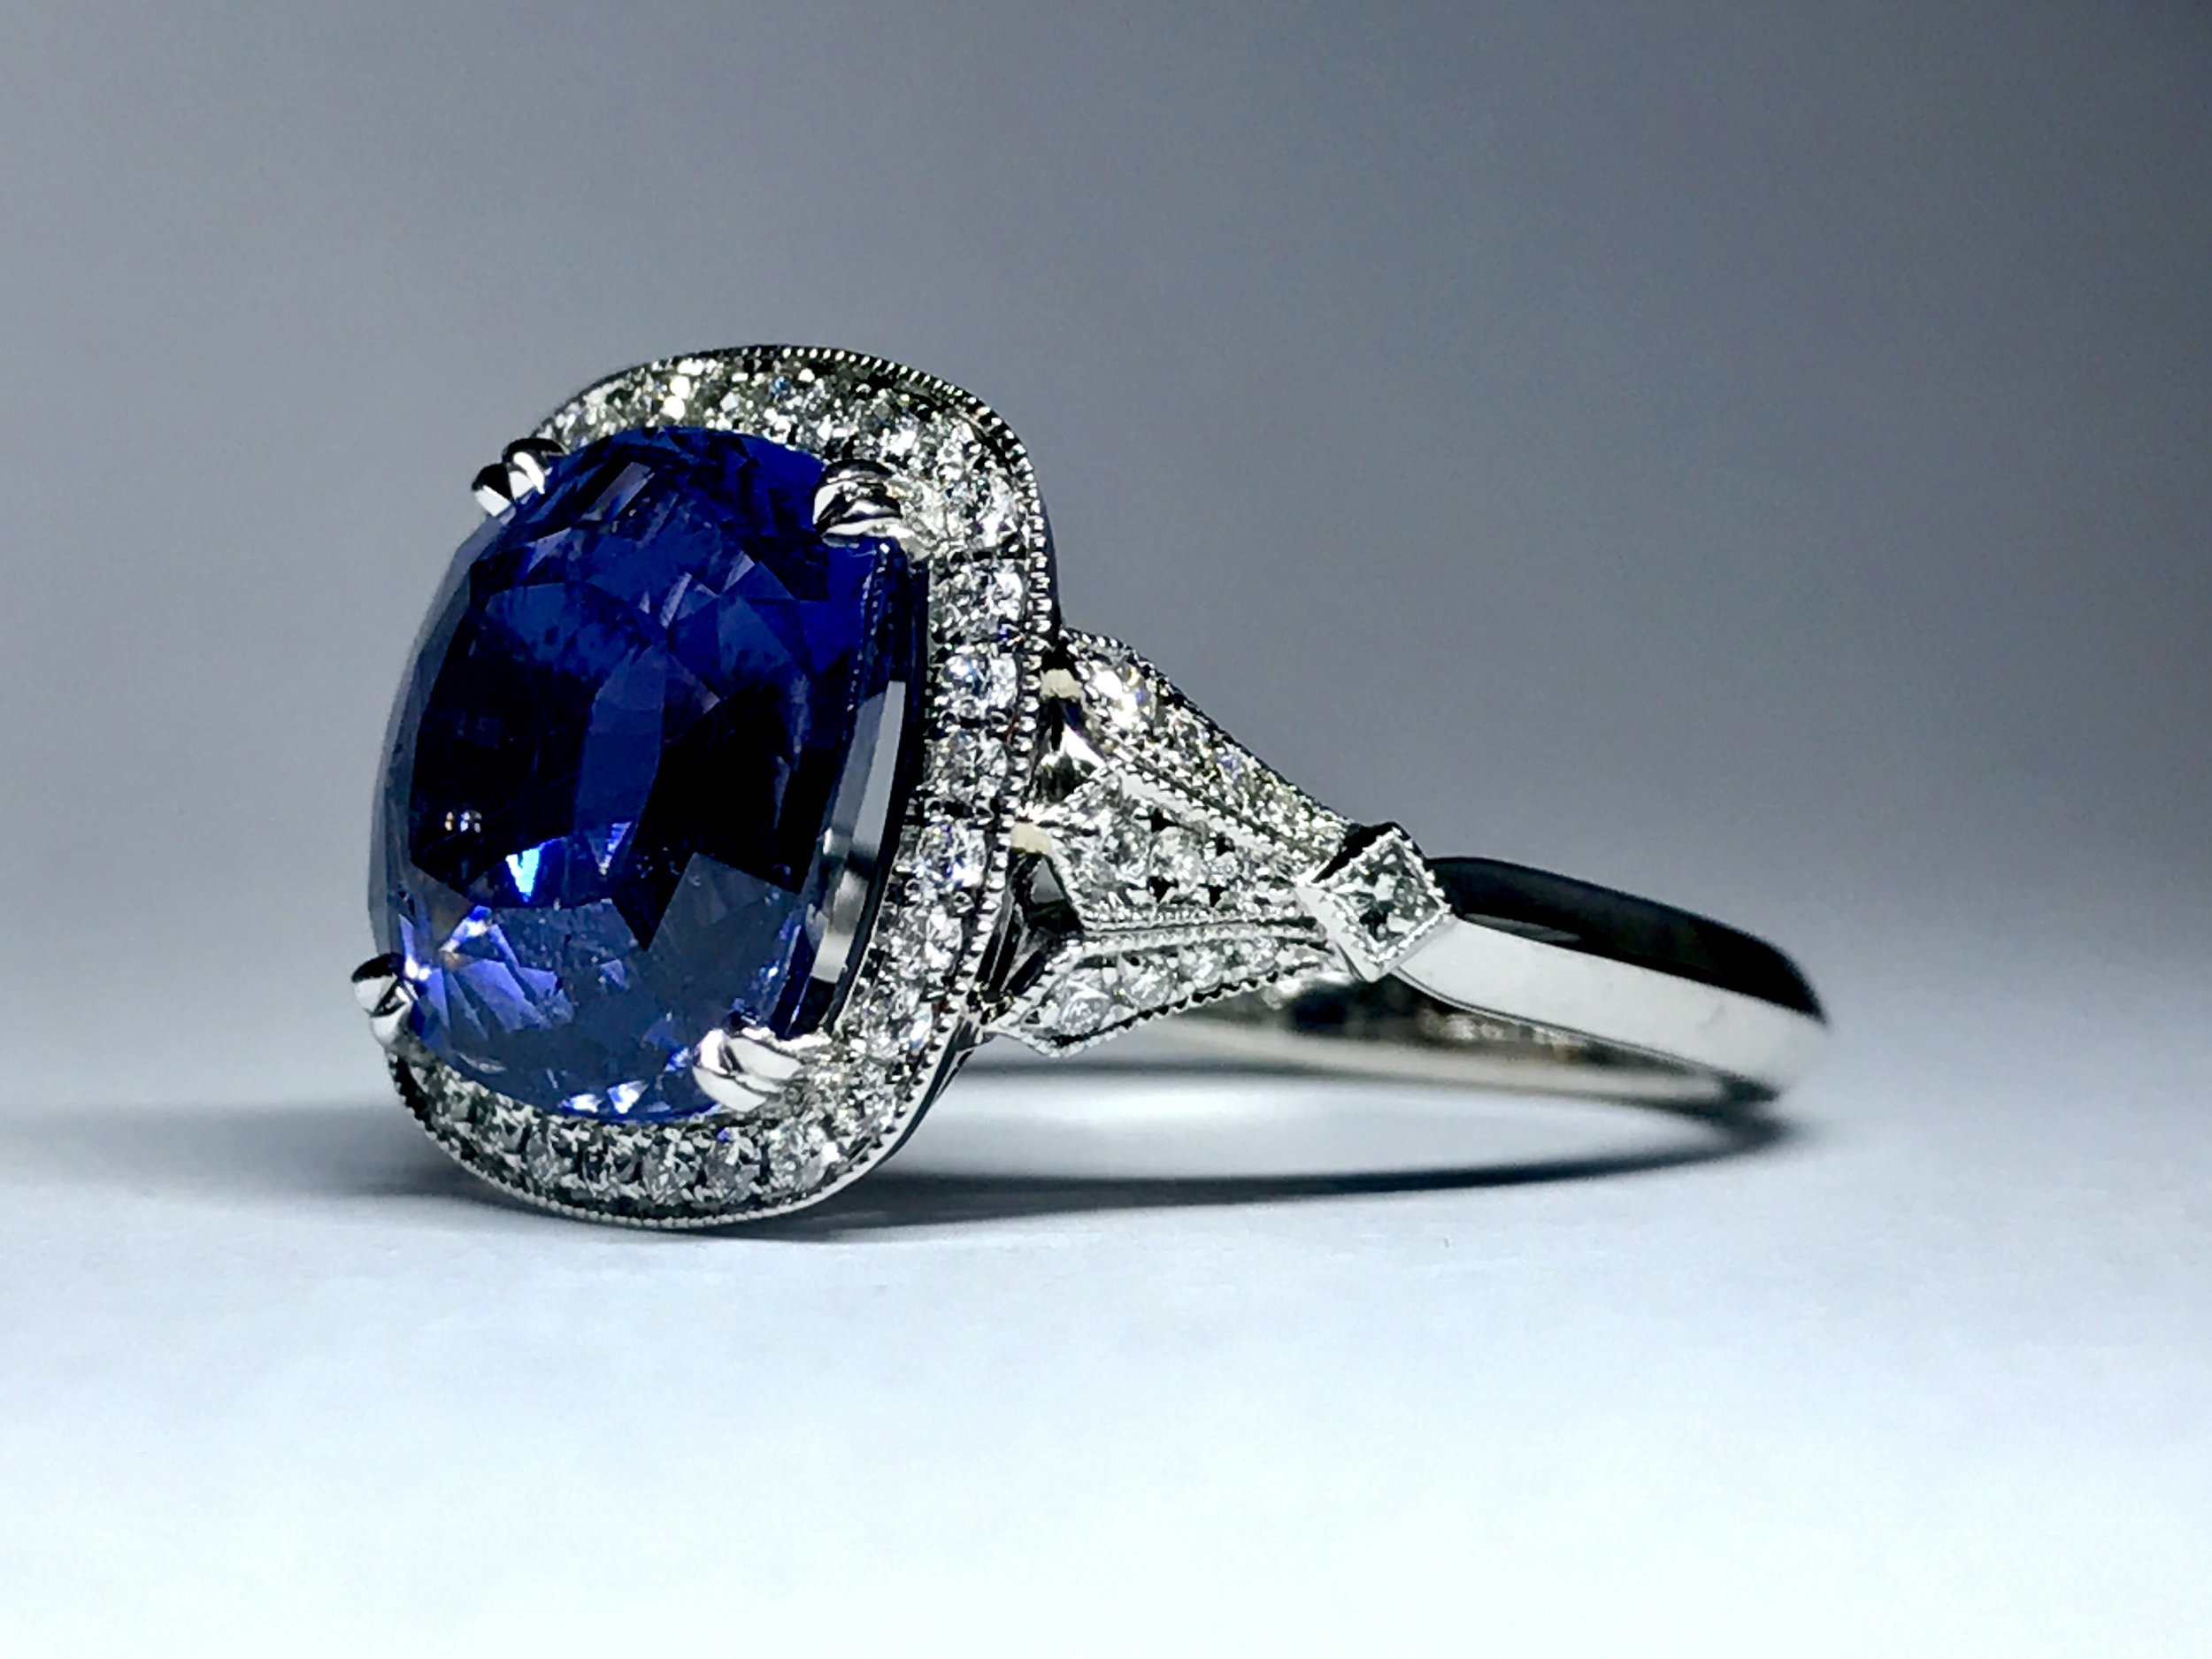 Copy of  Sapphire and diamond cluster ring. Made in Chichester, England.